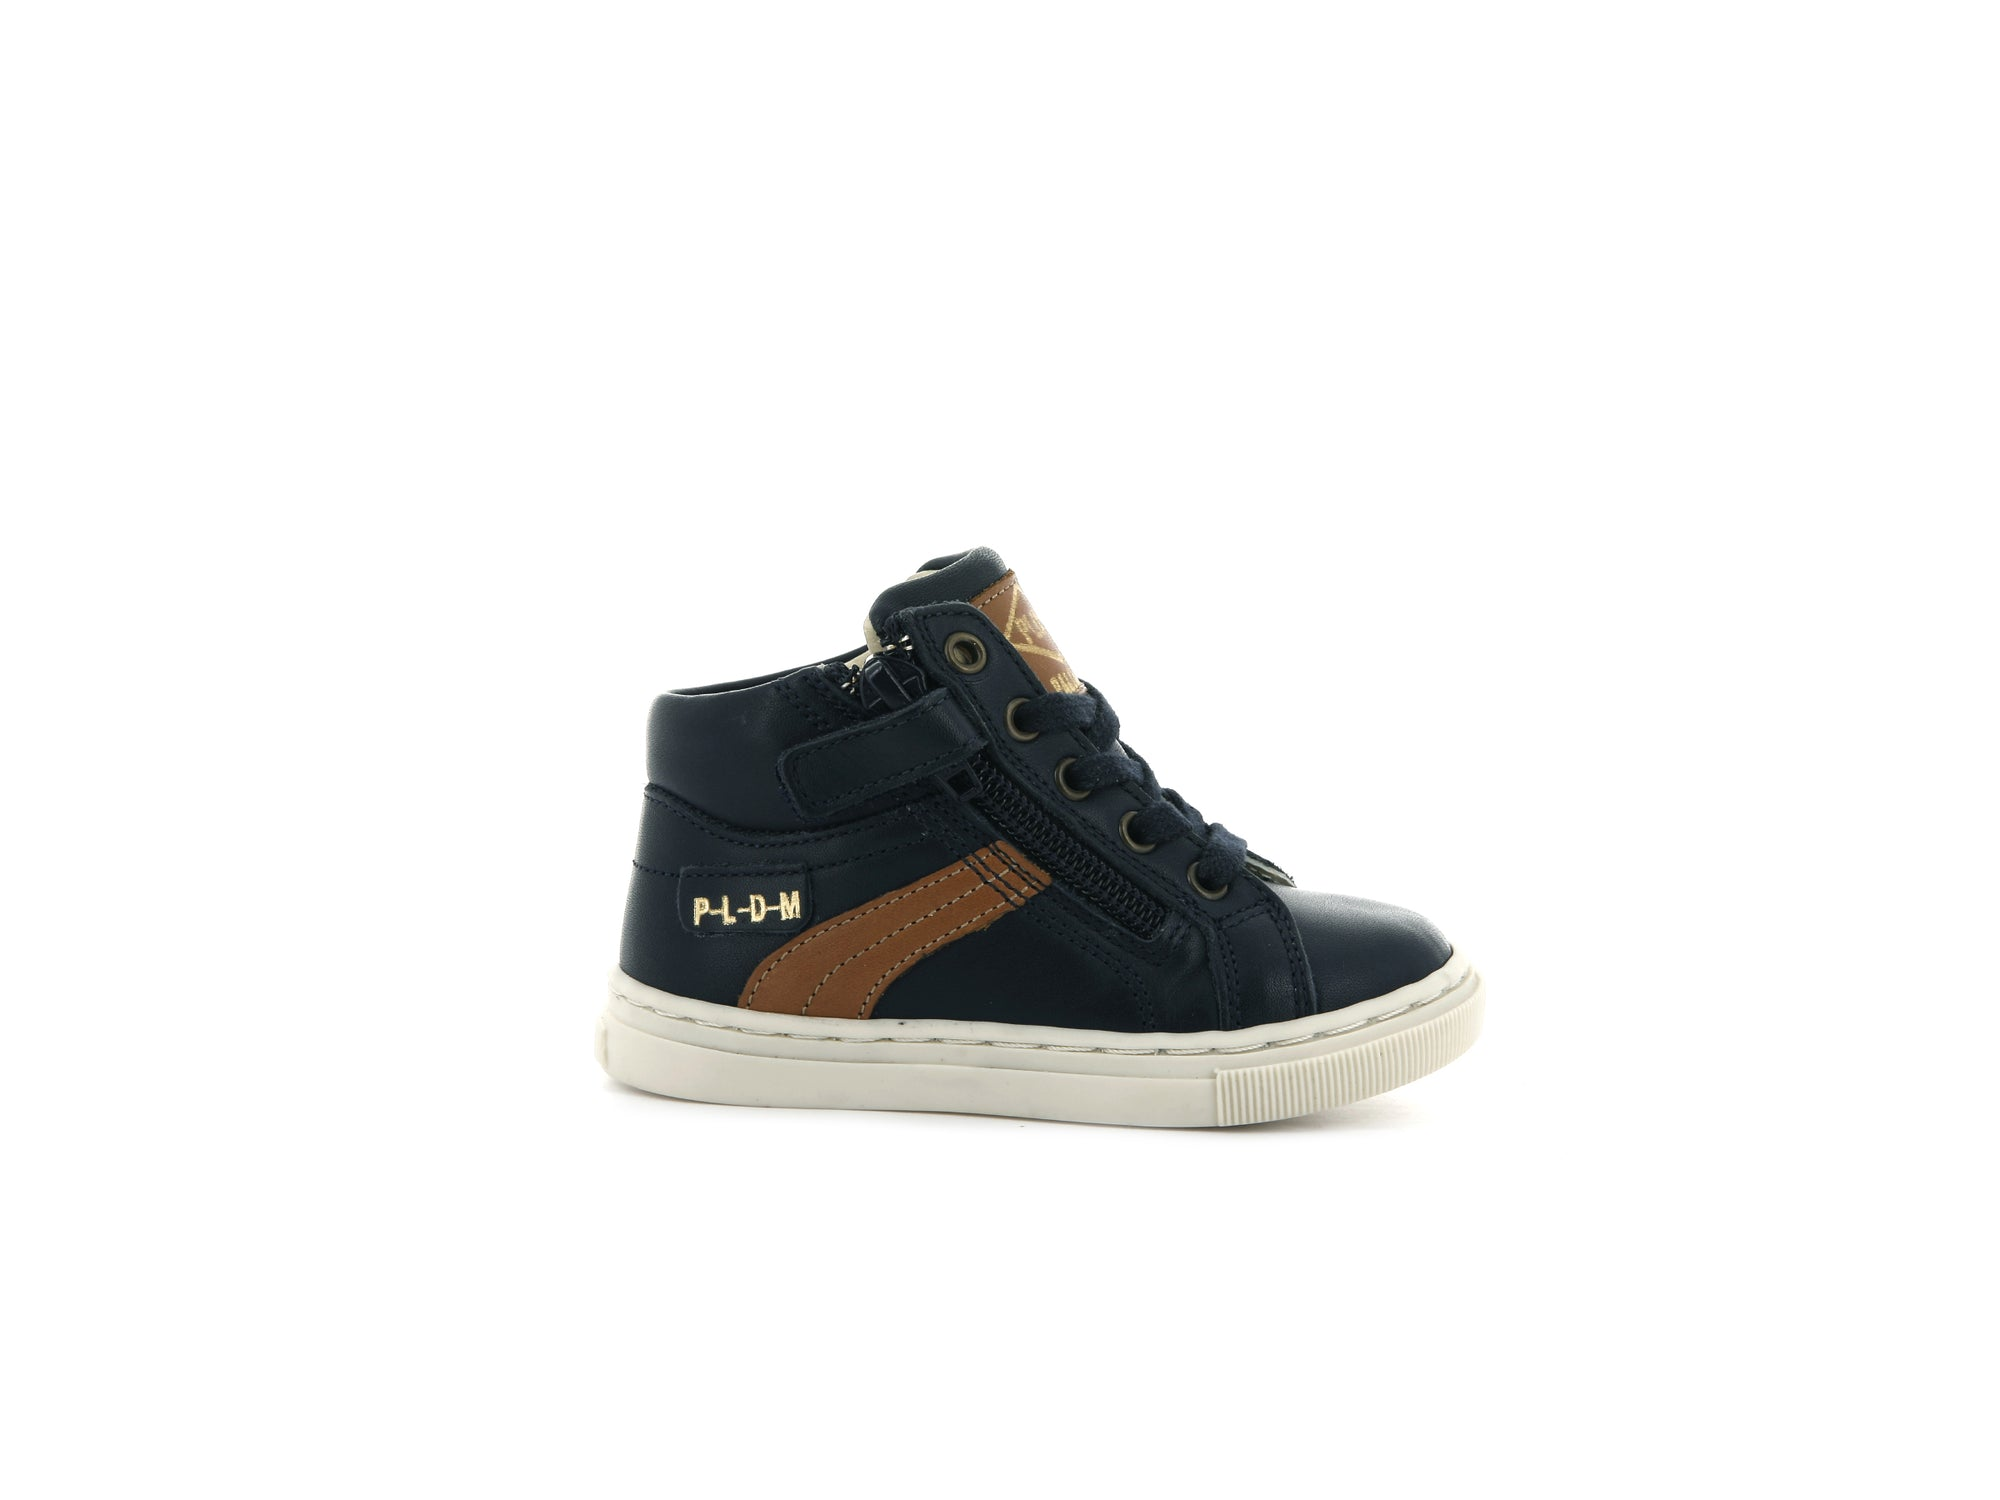 75093_C74 | Baskets Bébé POCO BB | NAVY/COGNAC